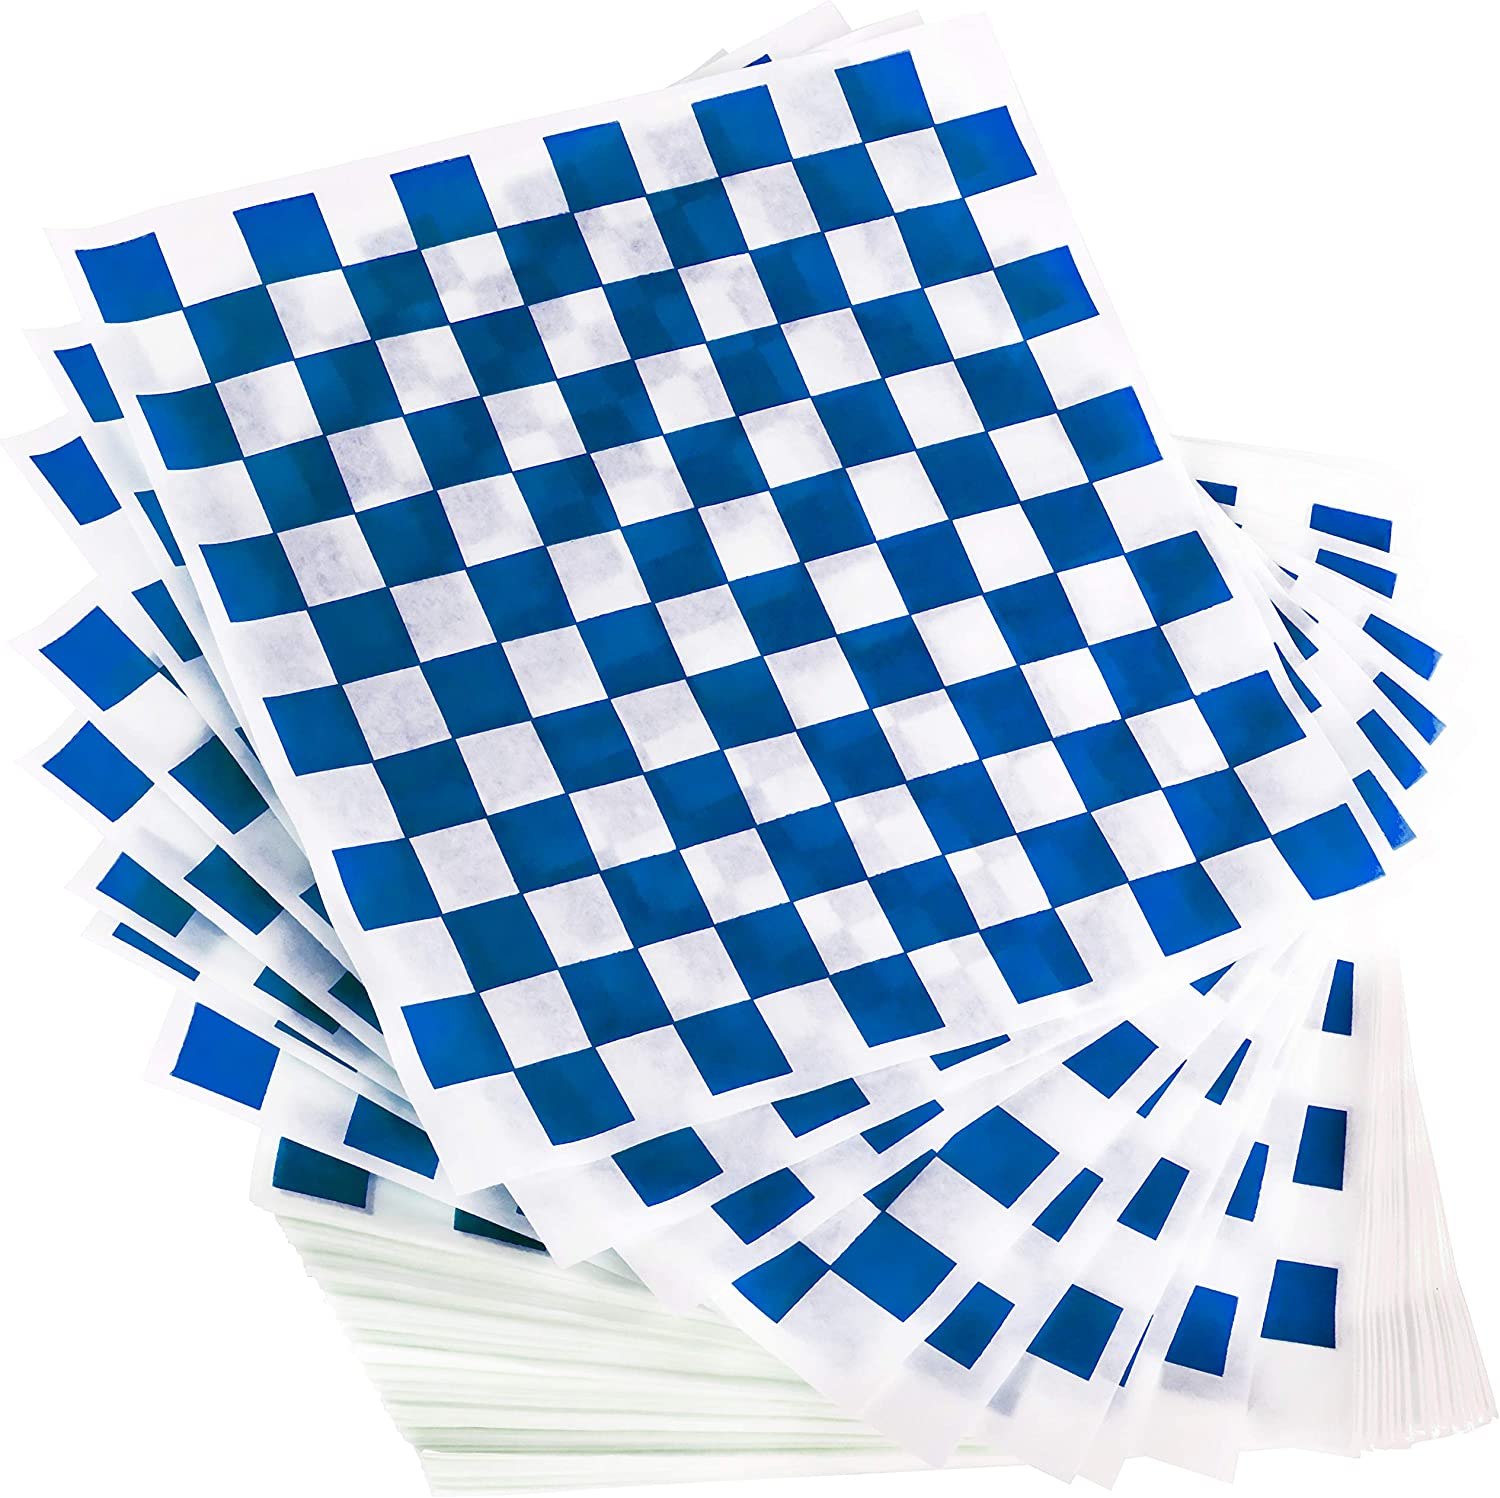 Avant Grub Deli Paper 300 Sheets. Turn Your Backyard Cookout Party into Oktoberfest with Blue & White Checkered Food Wrapping Papers. Grease-Resistant 12x12 Sandwich Wrap Prevents Food Stains!